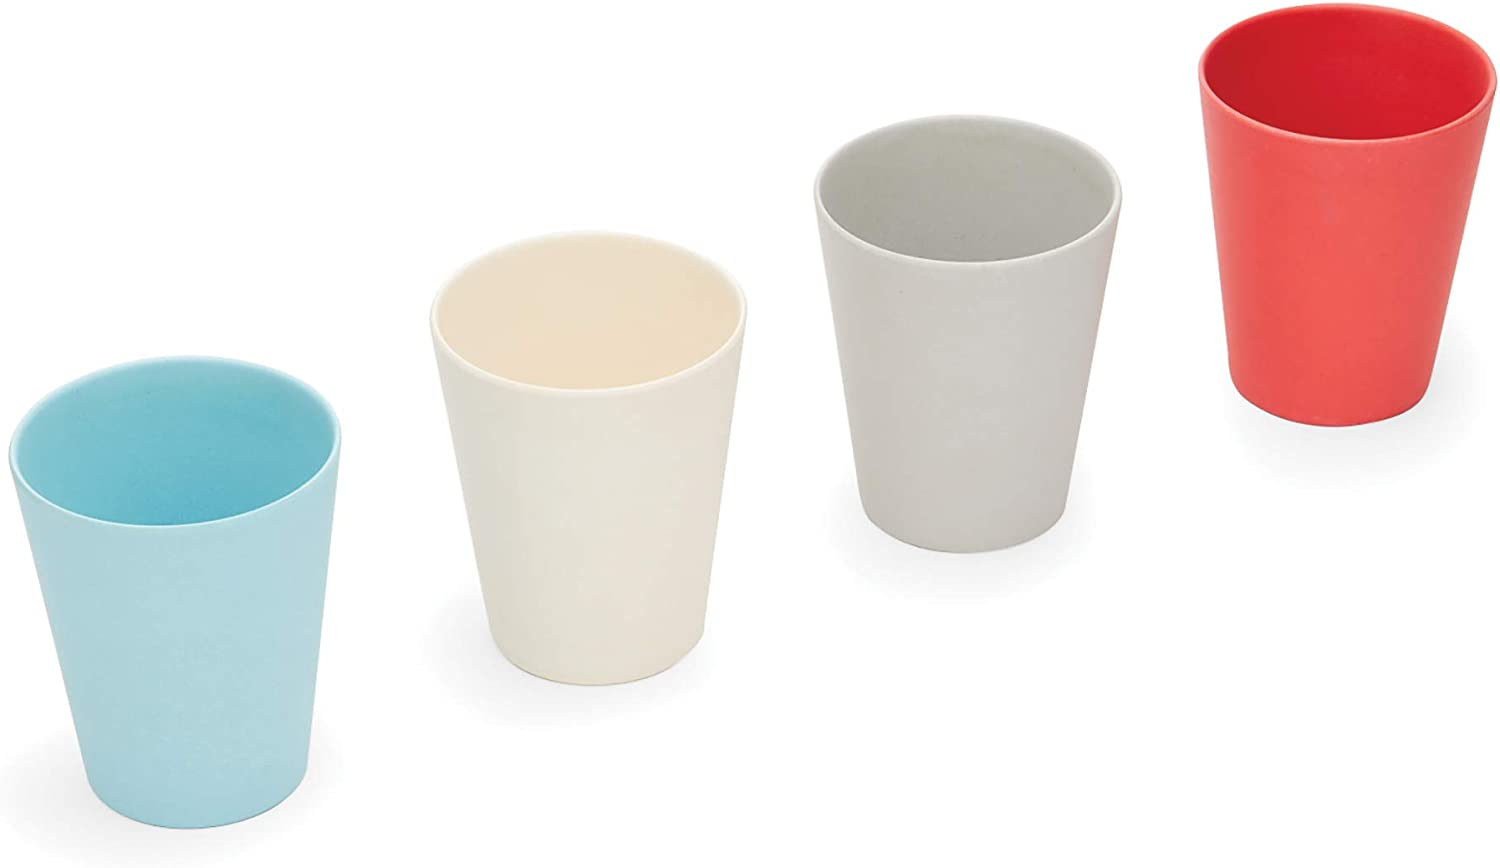 Red Rover Bamboo Kid's Cups Set of 4 Multicolor, Bamboo Kids' Cups